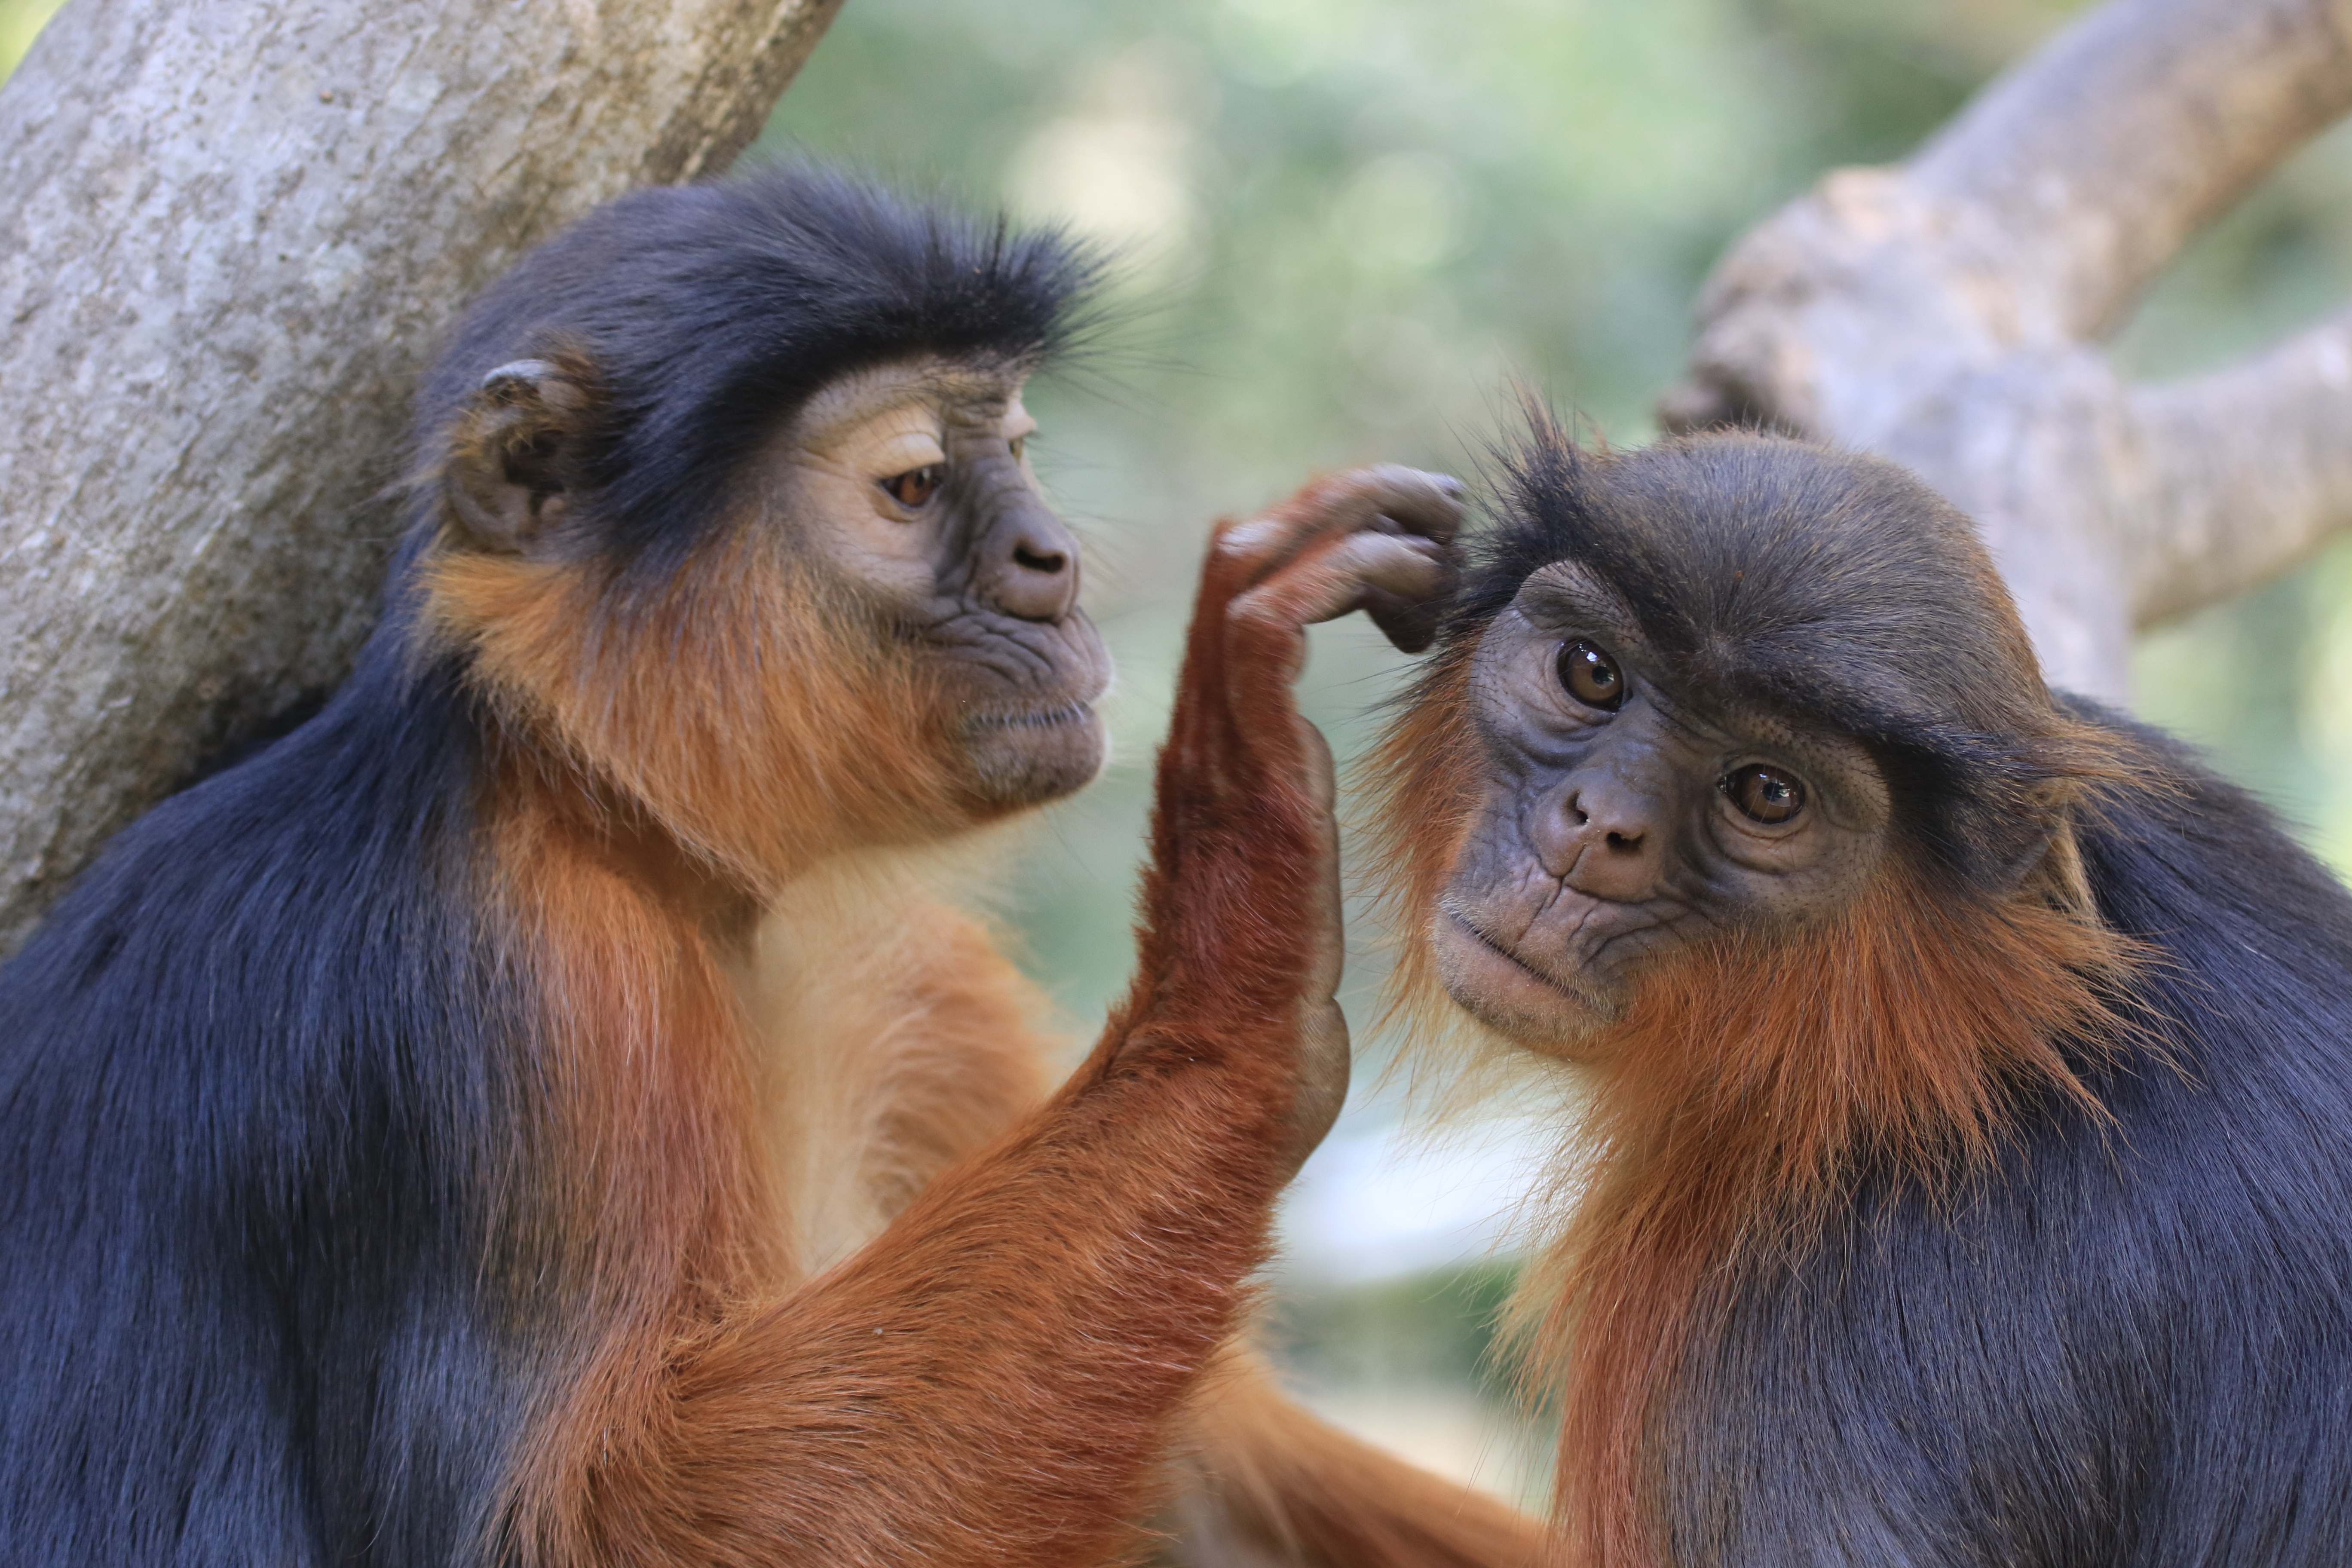 All species of red colobus monkey, including these Temminck's red colobus are under threat (Mic Mayhew)